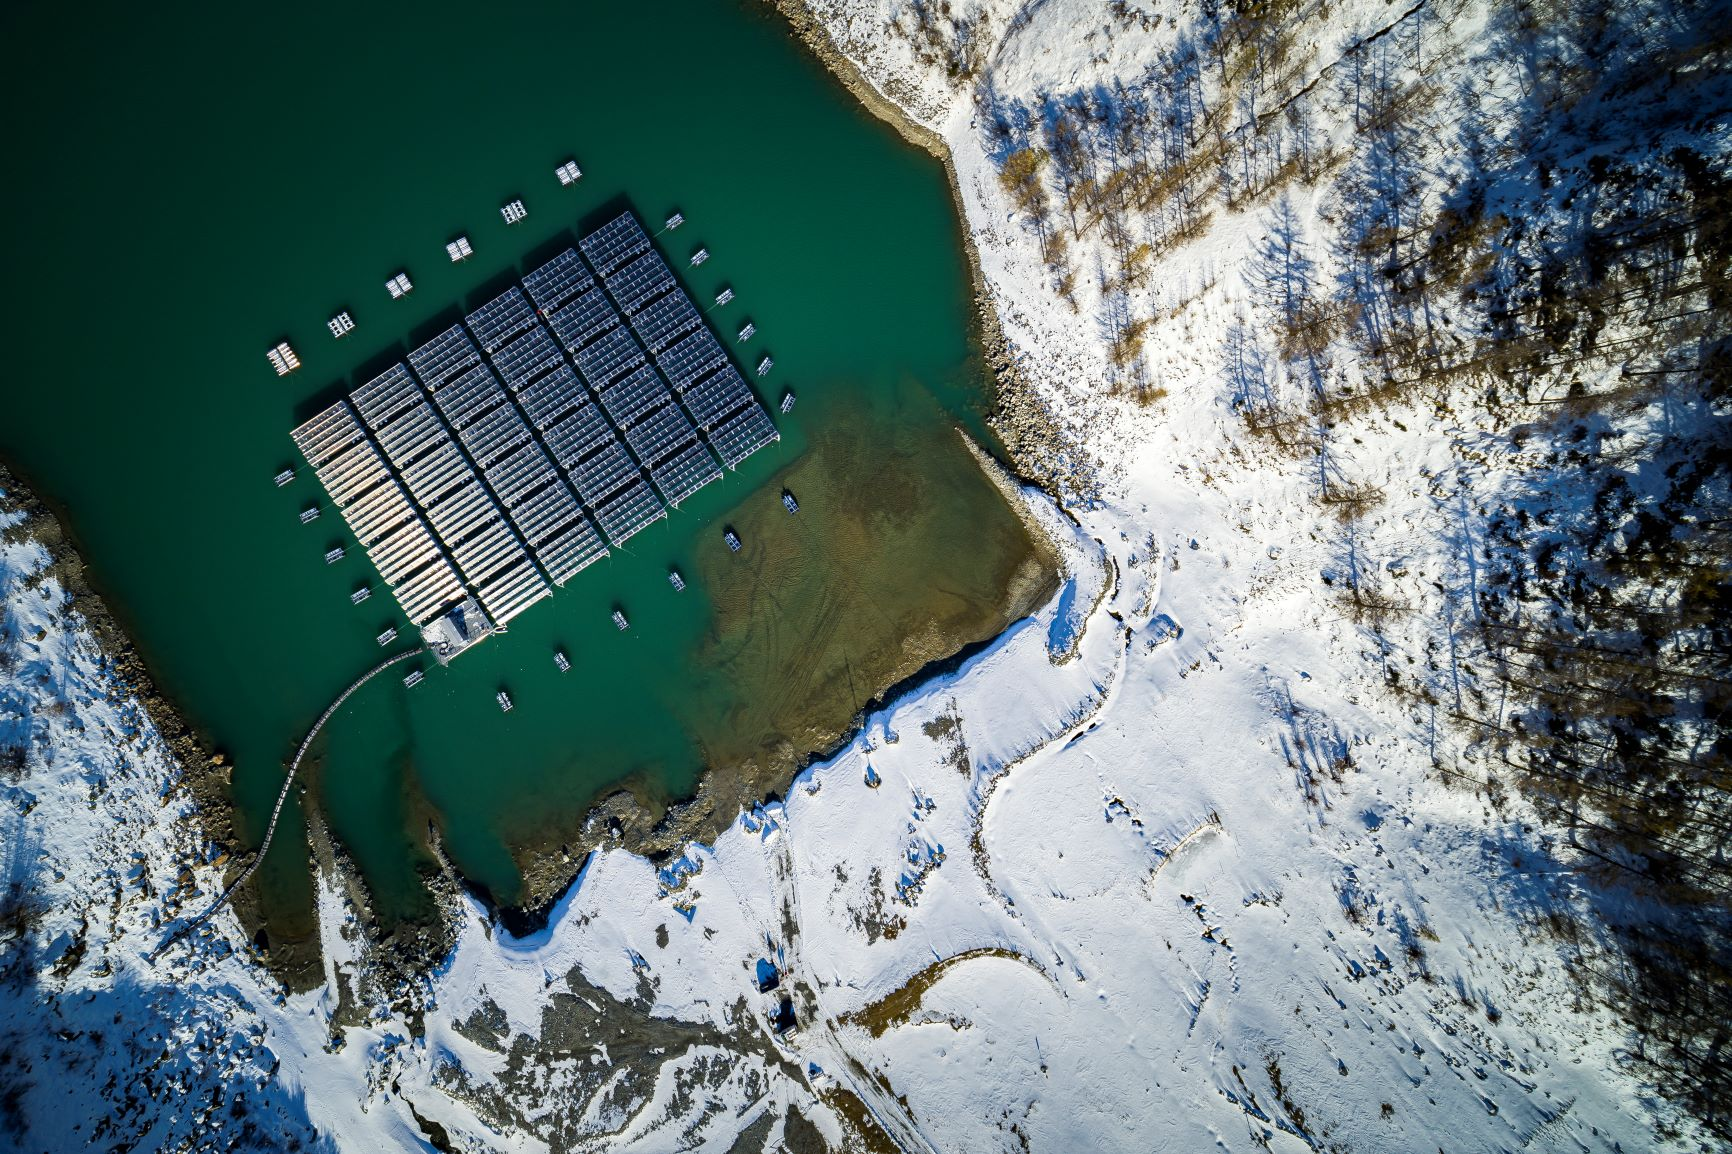 Lac des Toules is drained between November and March, leaving the solar plant resting directly on the ground © Romande Energie